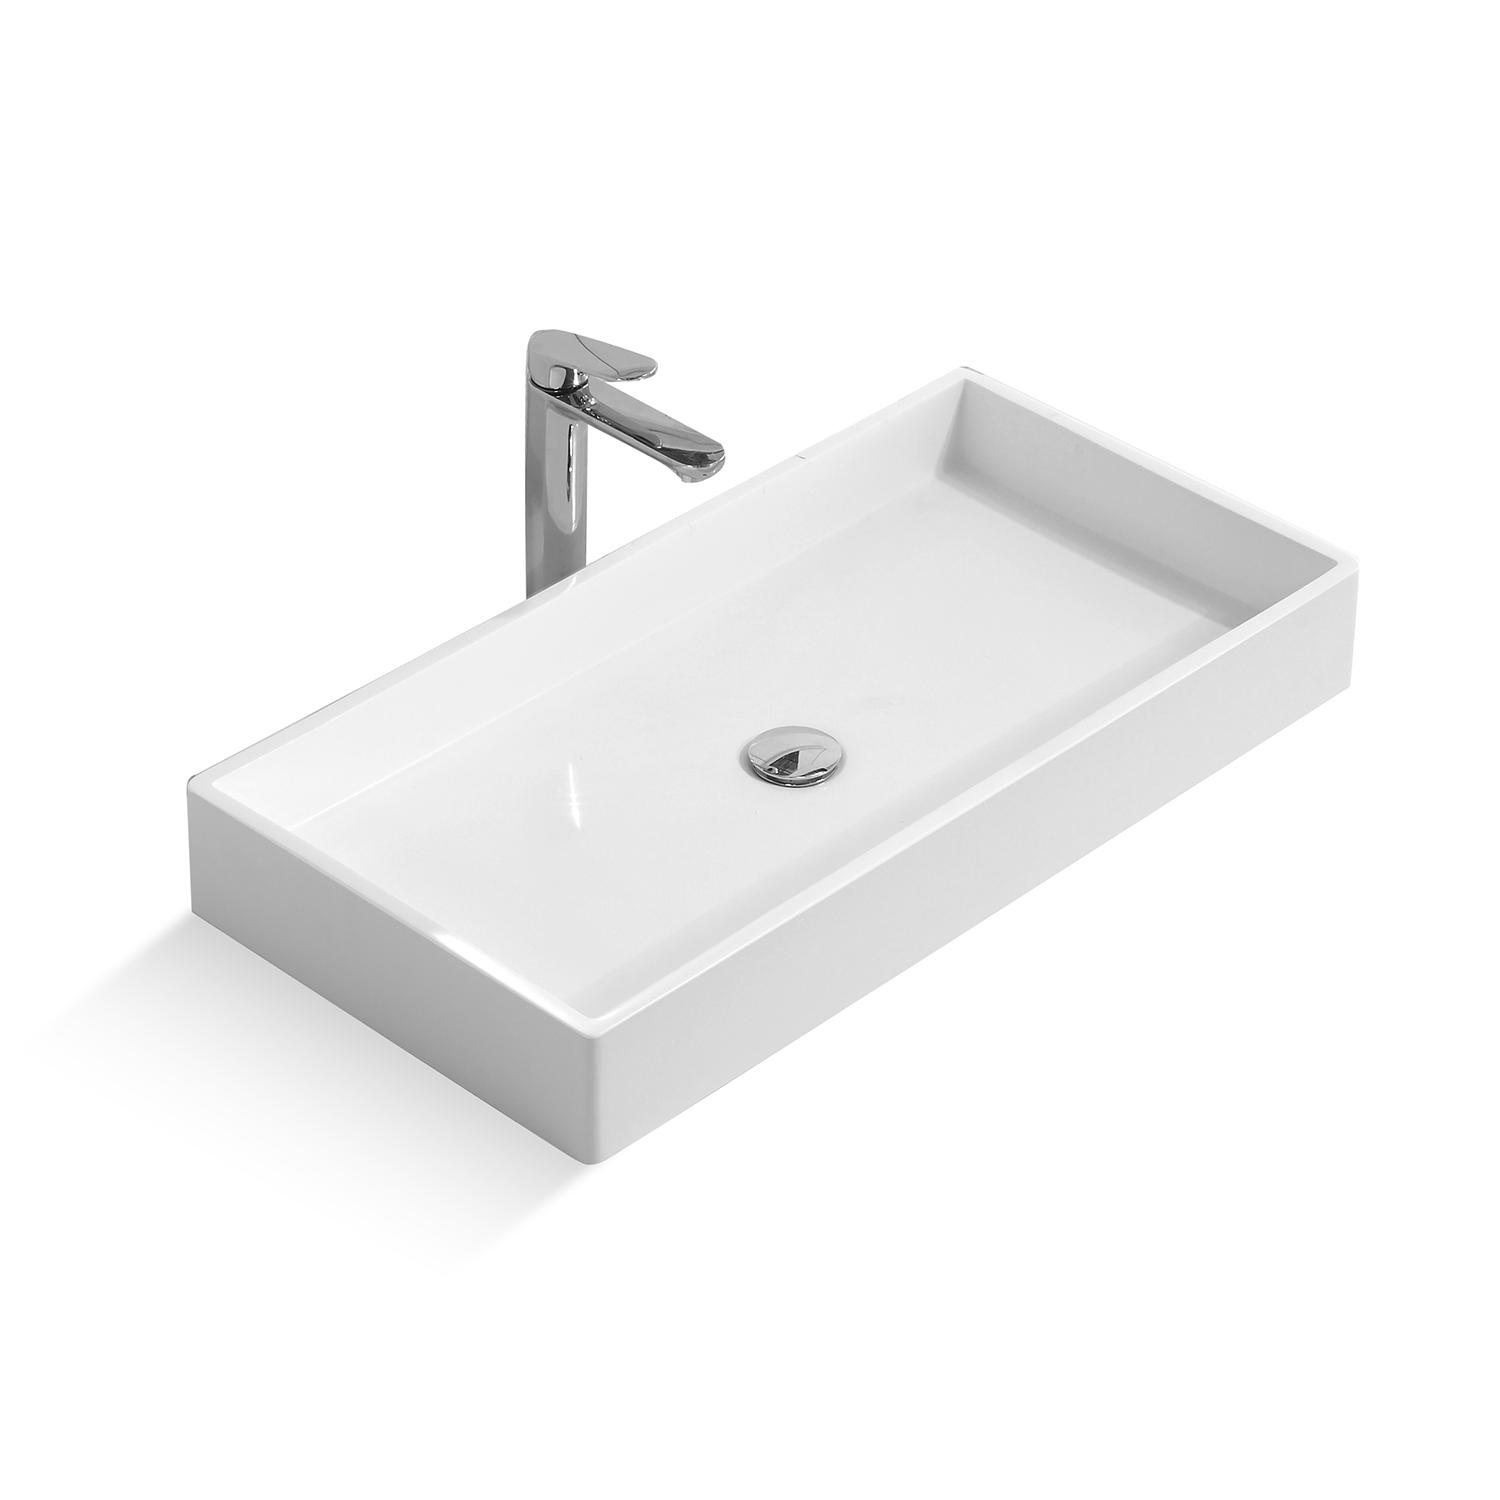 DAX Solid Surface Rectangle Single Bowl Bathroom Vessel Sink, White Finish,  31-1/2 x 15-3/4 x 4-1/8 Inches (DAX-AB-1327)